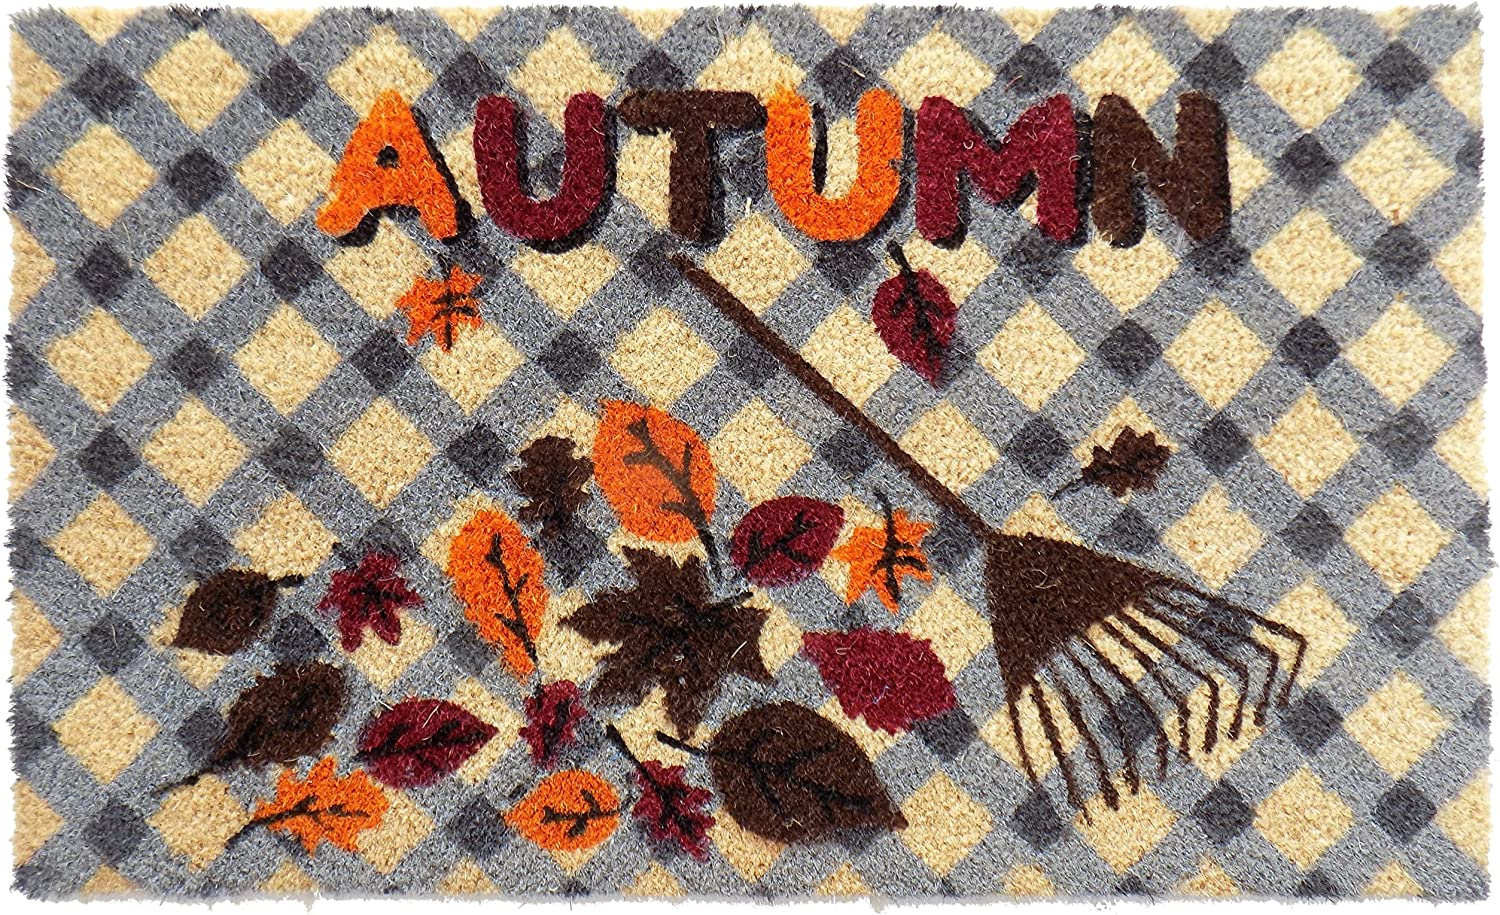 Imports Decor 540PVC Autumn Vinyl Backed Coir Doormat, 30 x 18